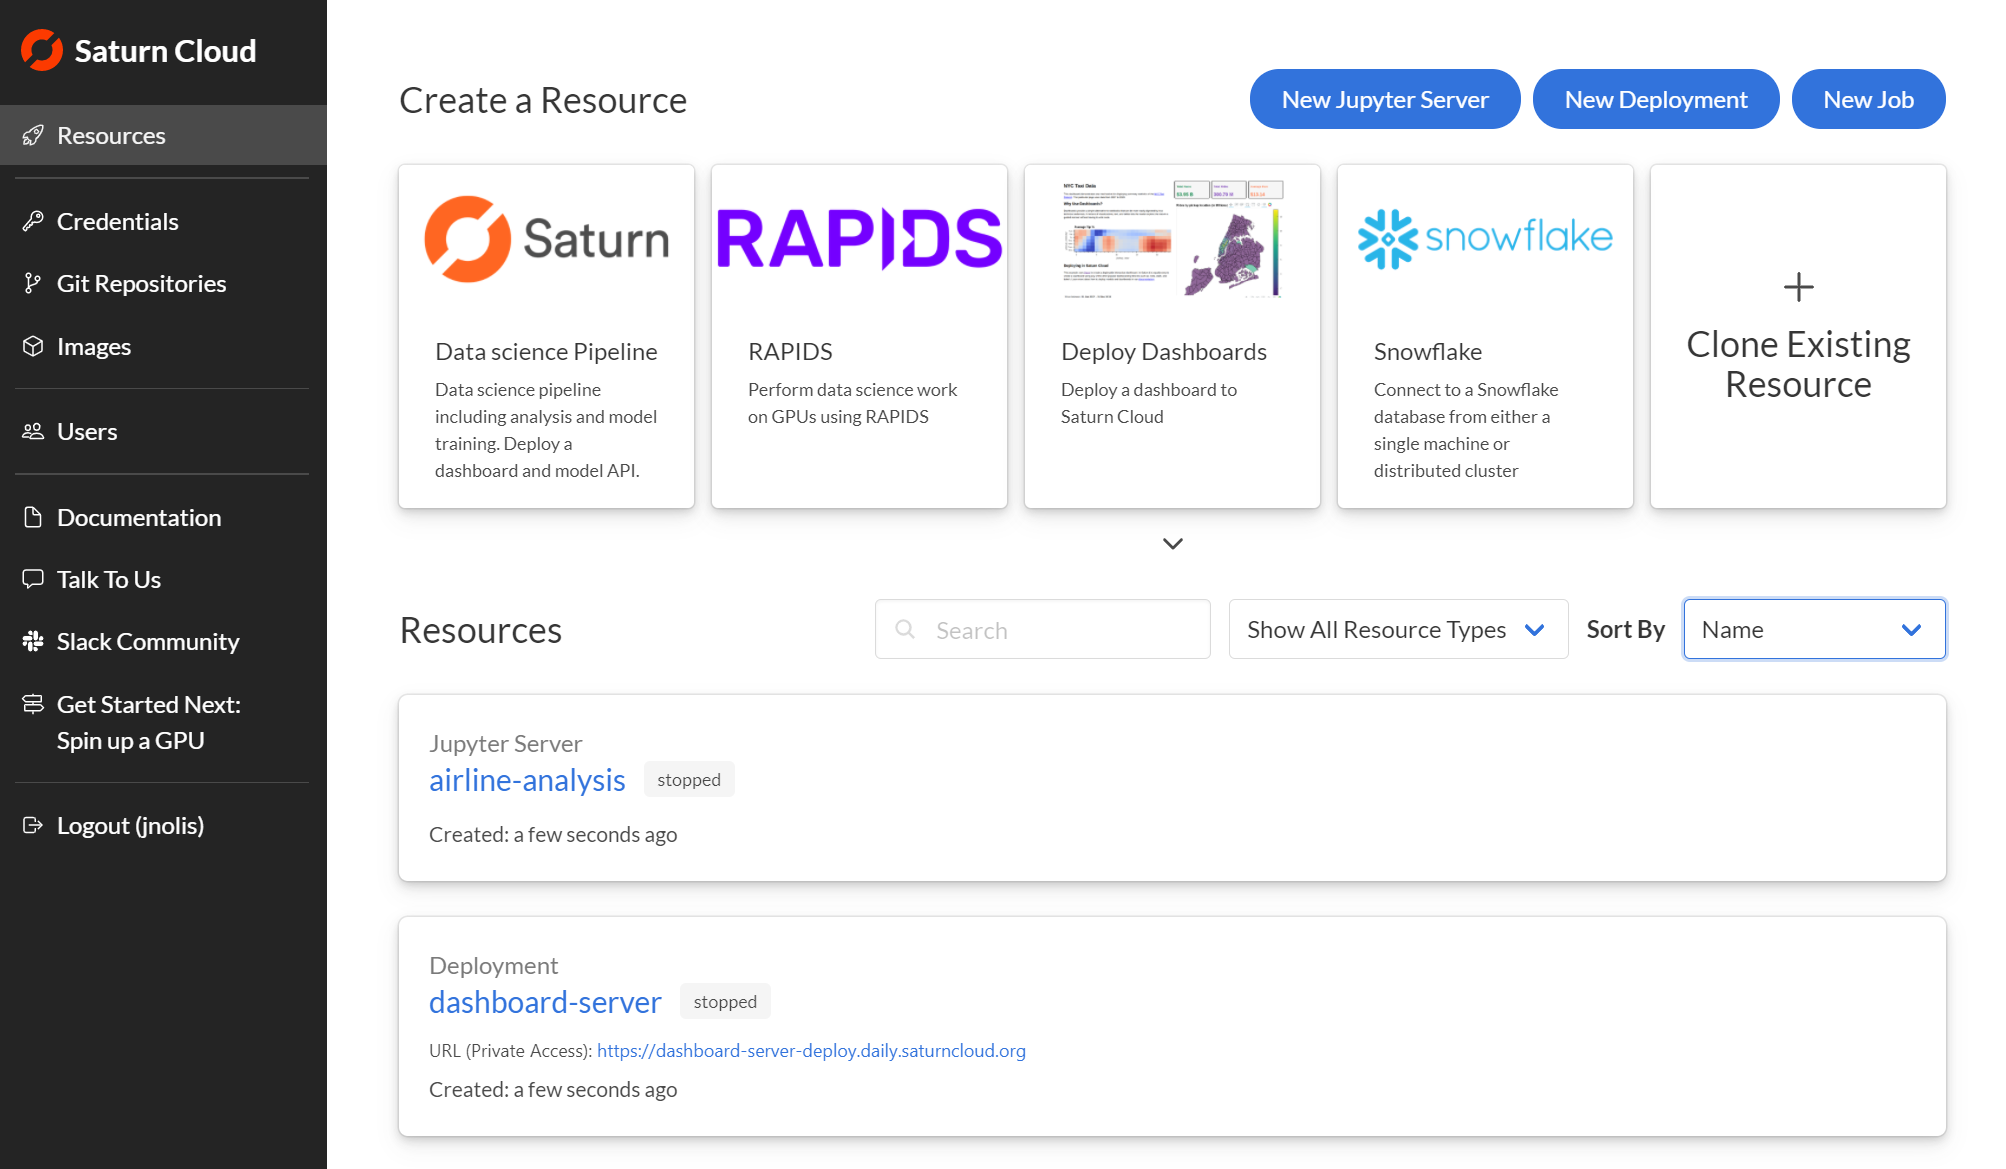 Screenshot of Saturn Cloud Resources page